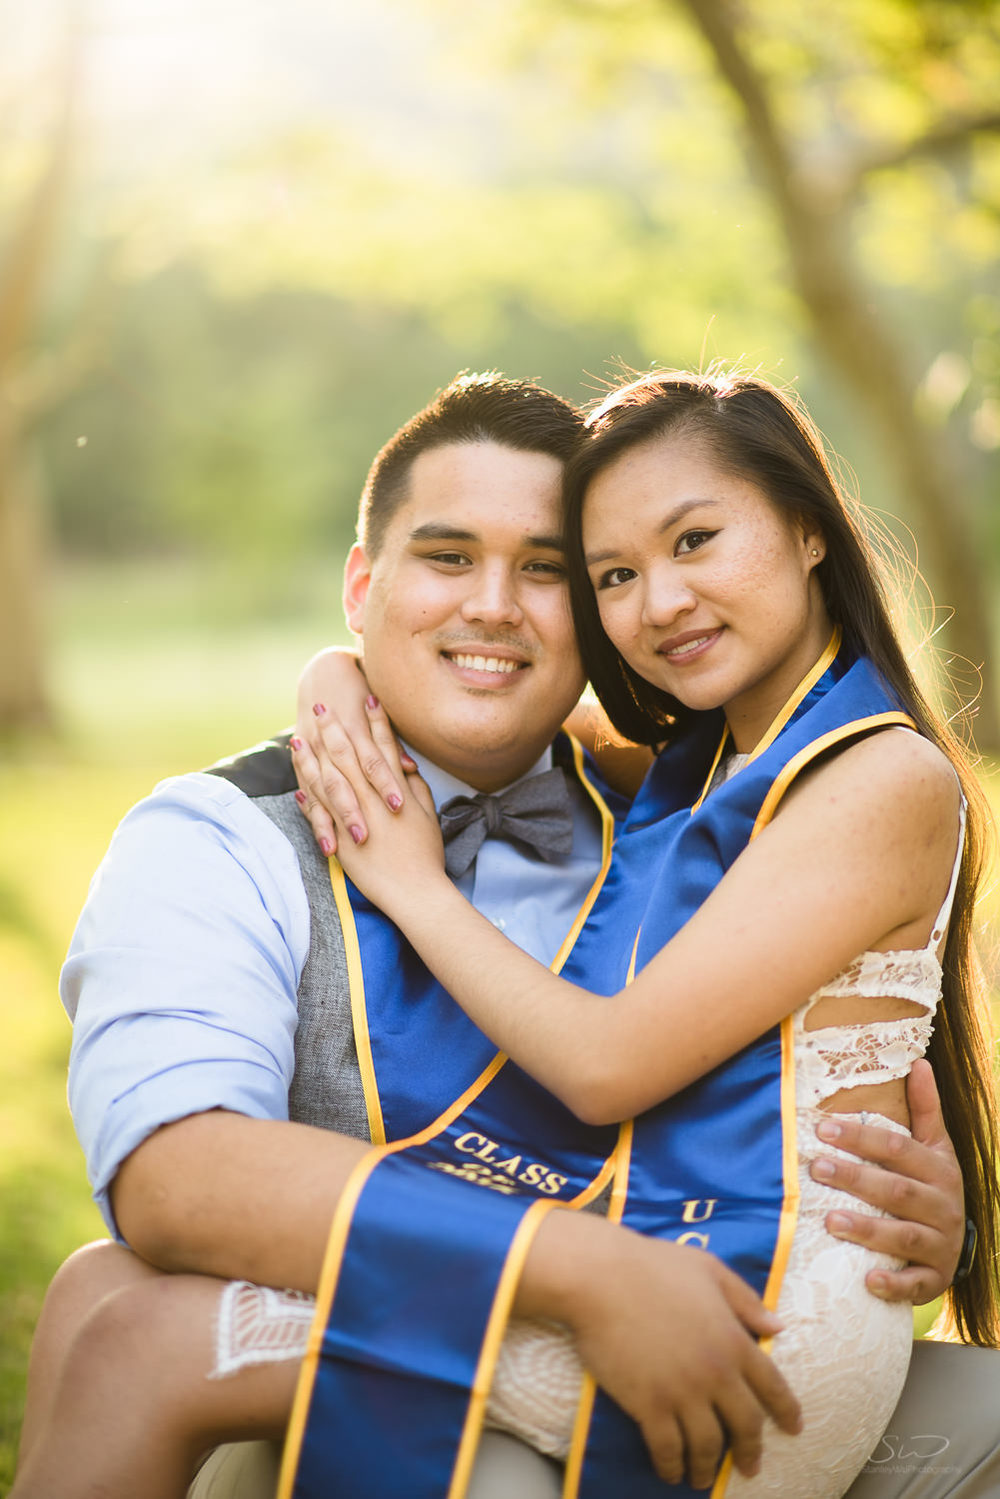 ucr_ucla_graduation_couple_granada_hills-6.jpg